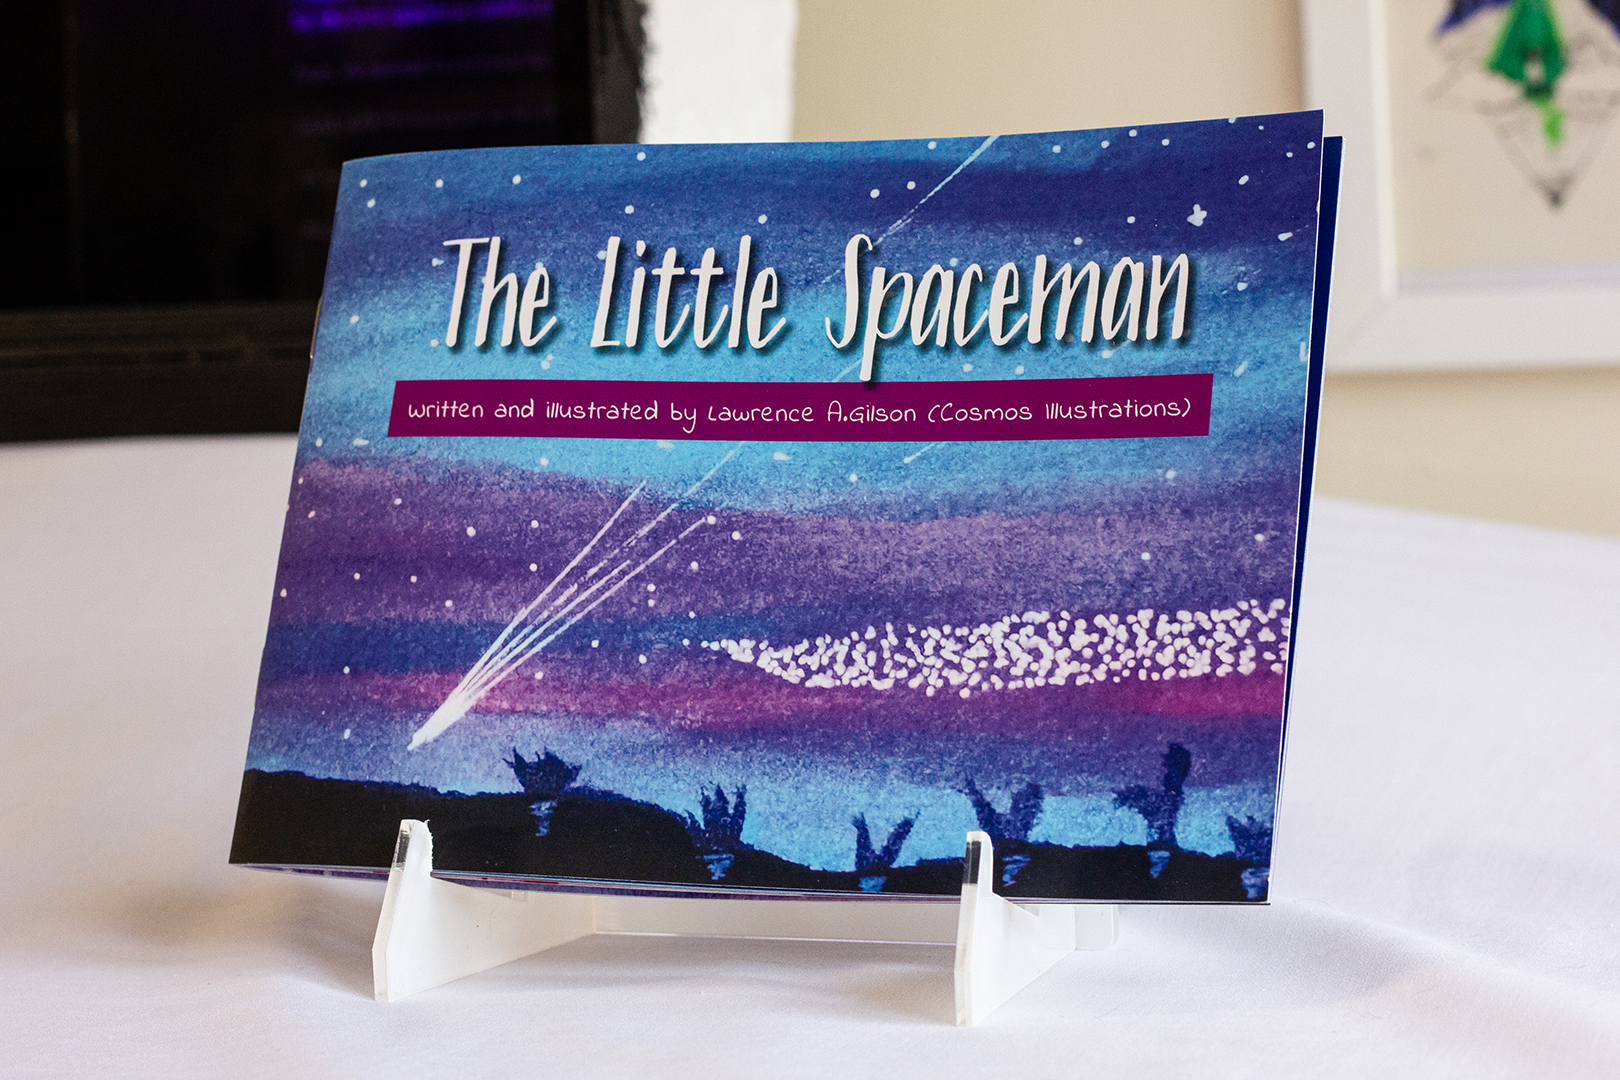 A small book called The Little Spaceman. The cover shows a cosmos with shooting stars.